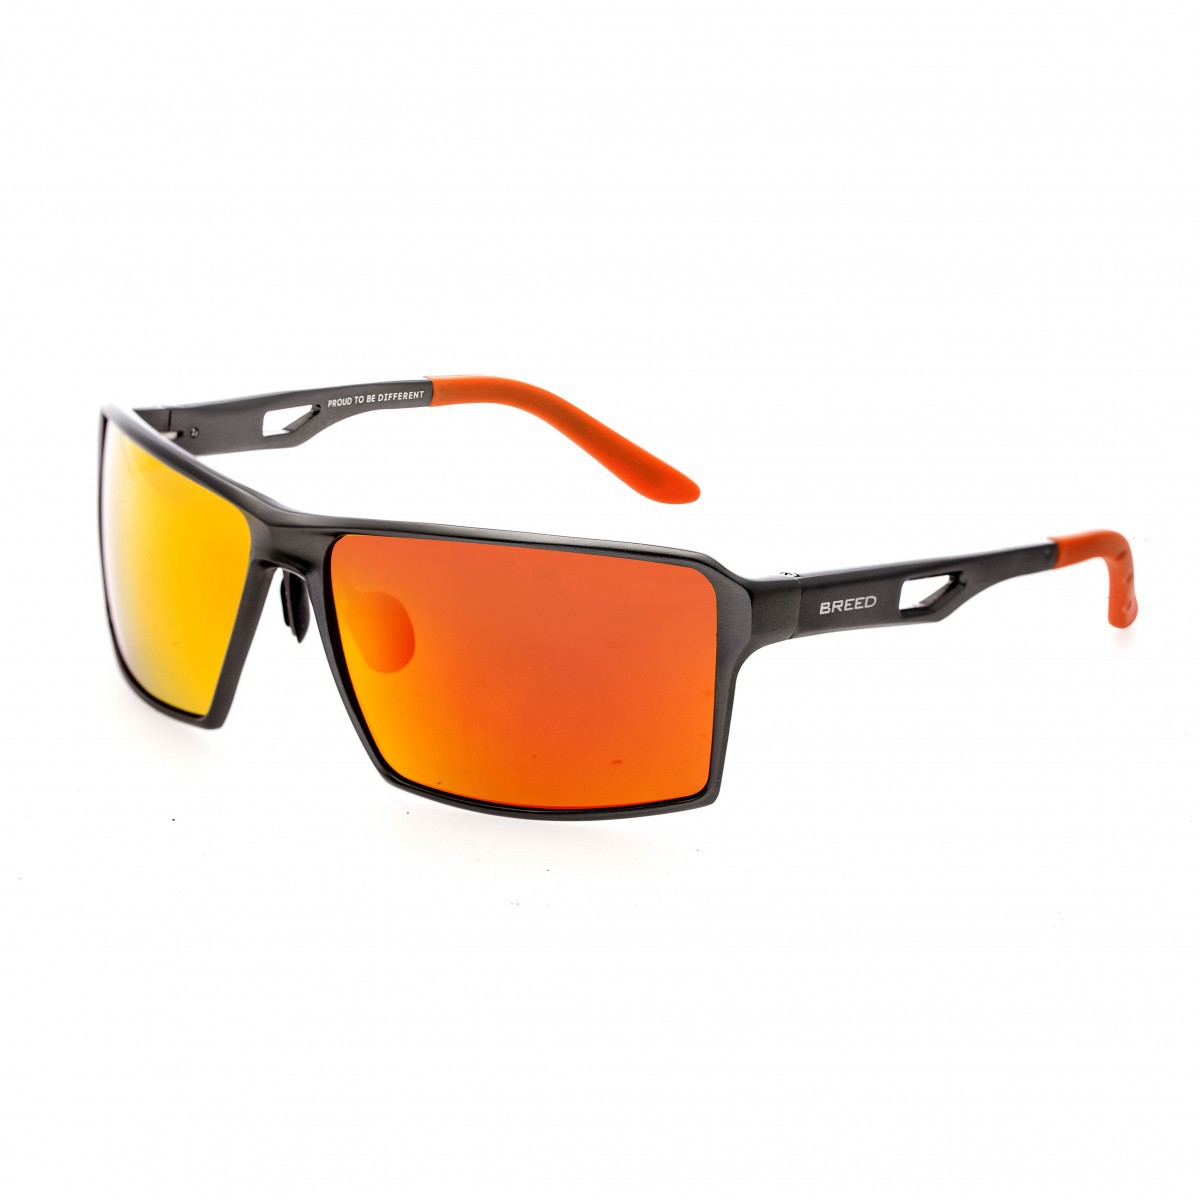 Breed Centaurus Aluminium Polarized Sunglasses - Gunmetal/Red-Yellow BSG021DR